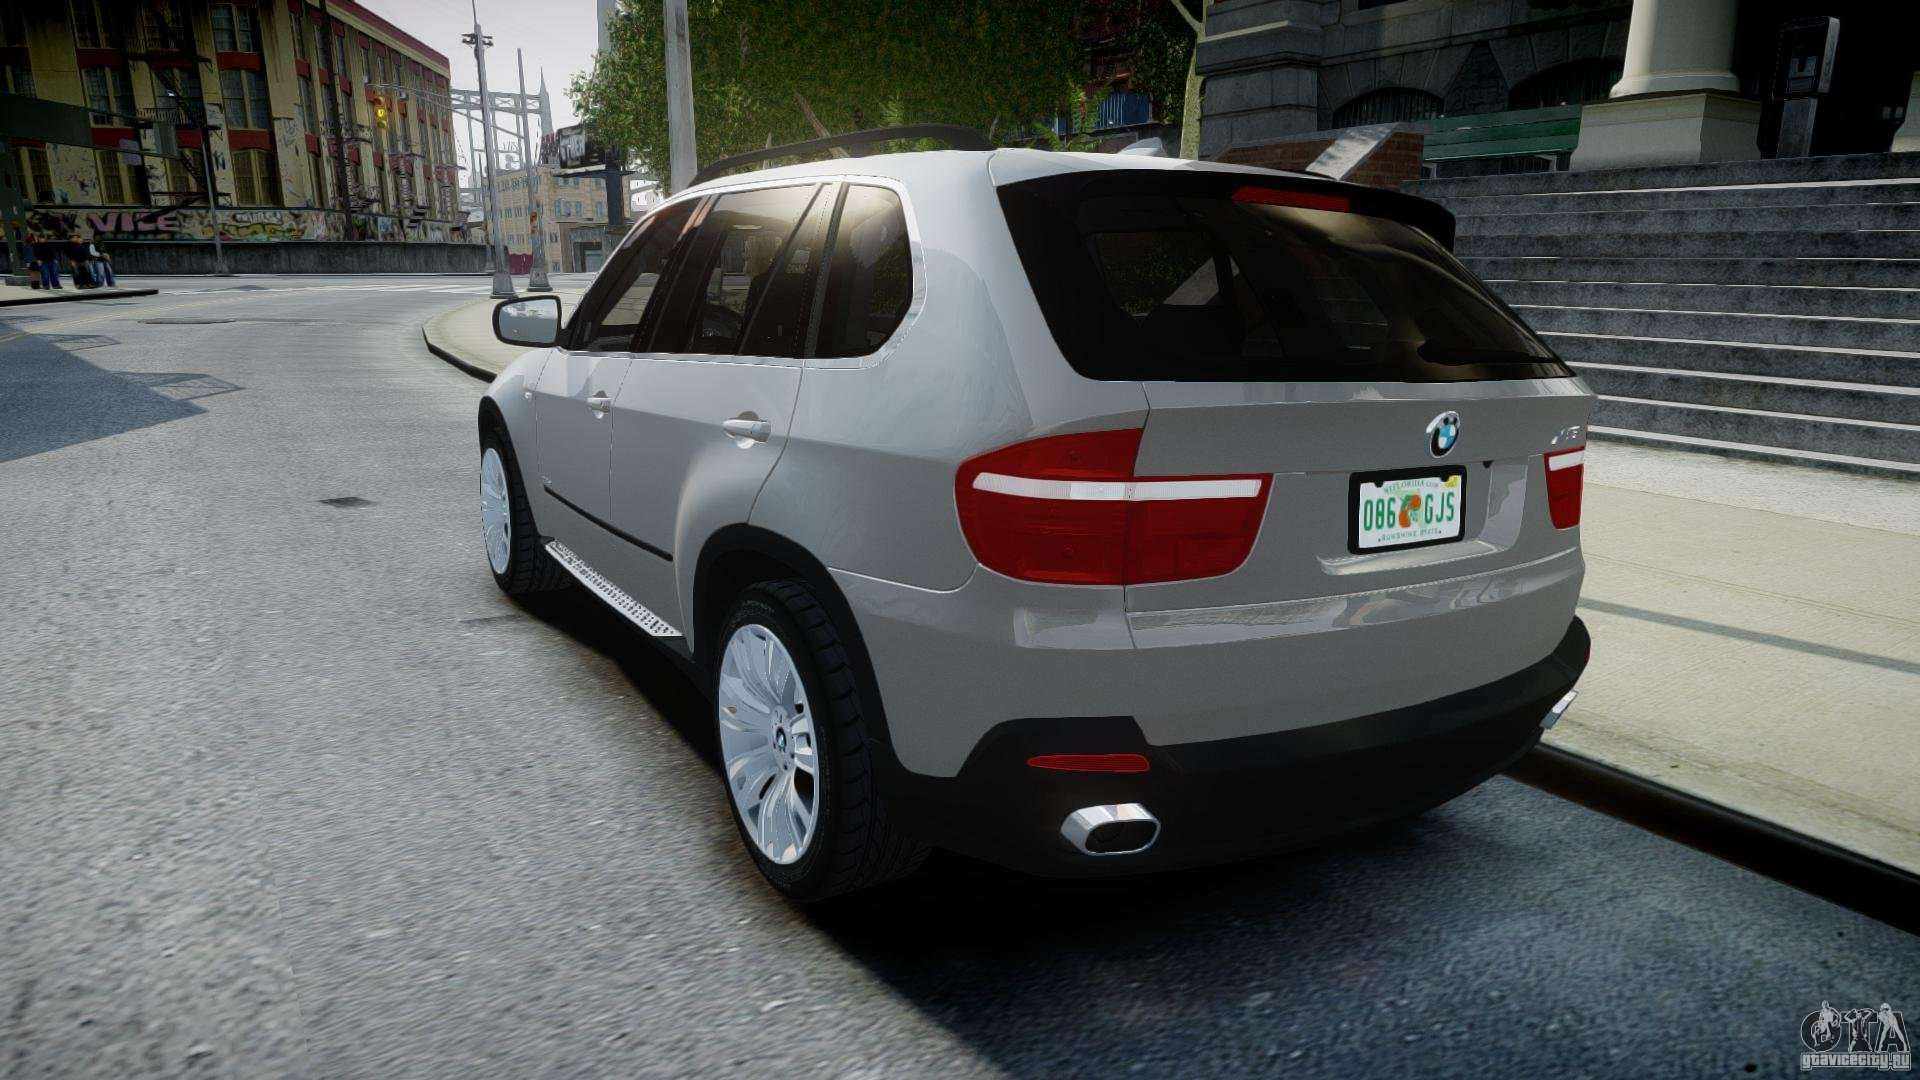 bmw x5 experience version 2009 wheels 223m para gta 4. Black Bedroom Furniture Sets. Home Design Ideas